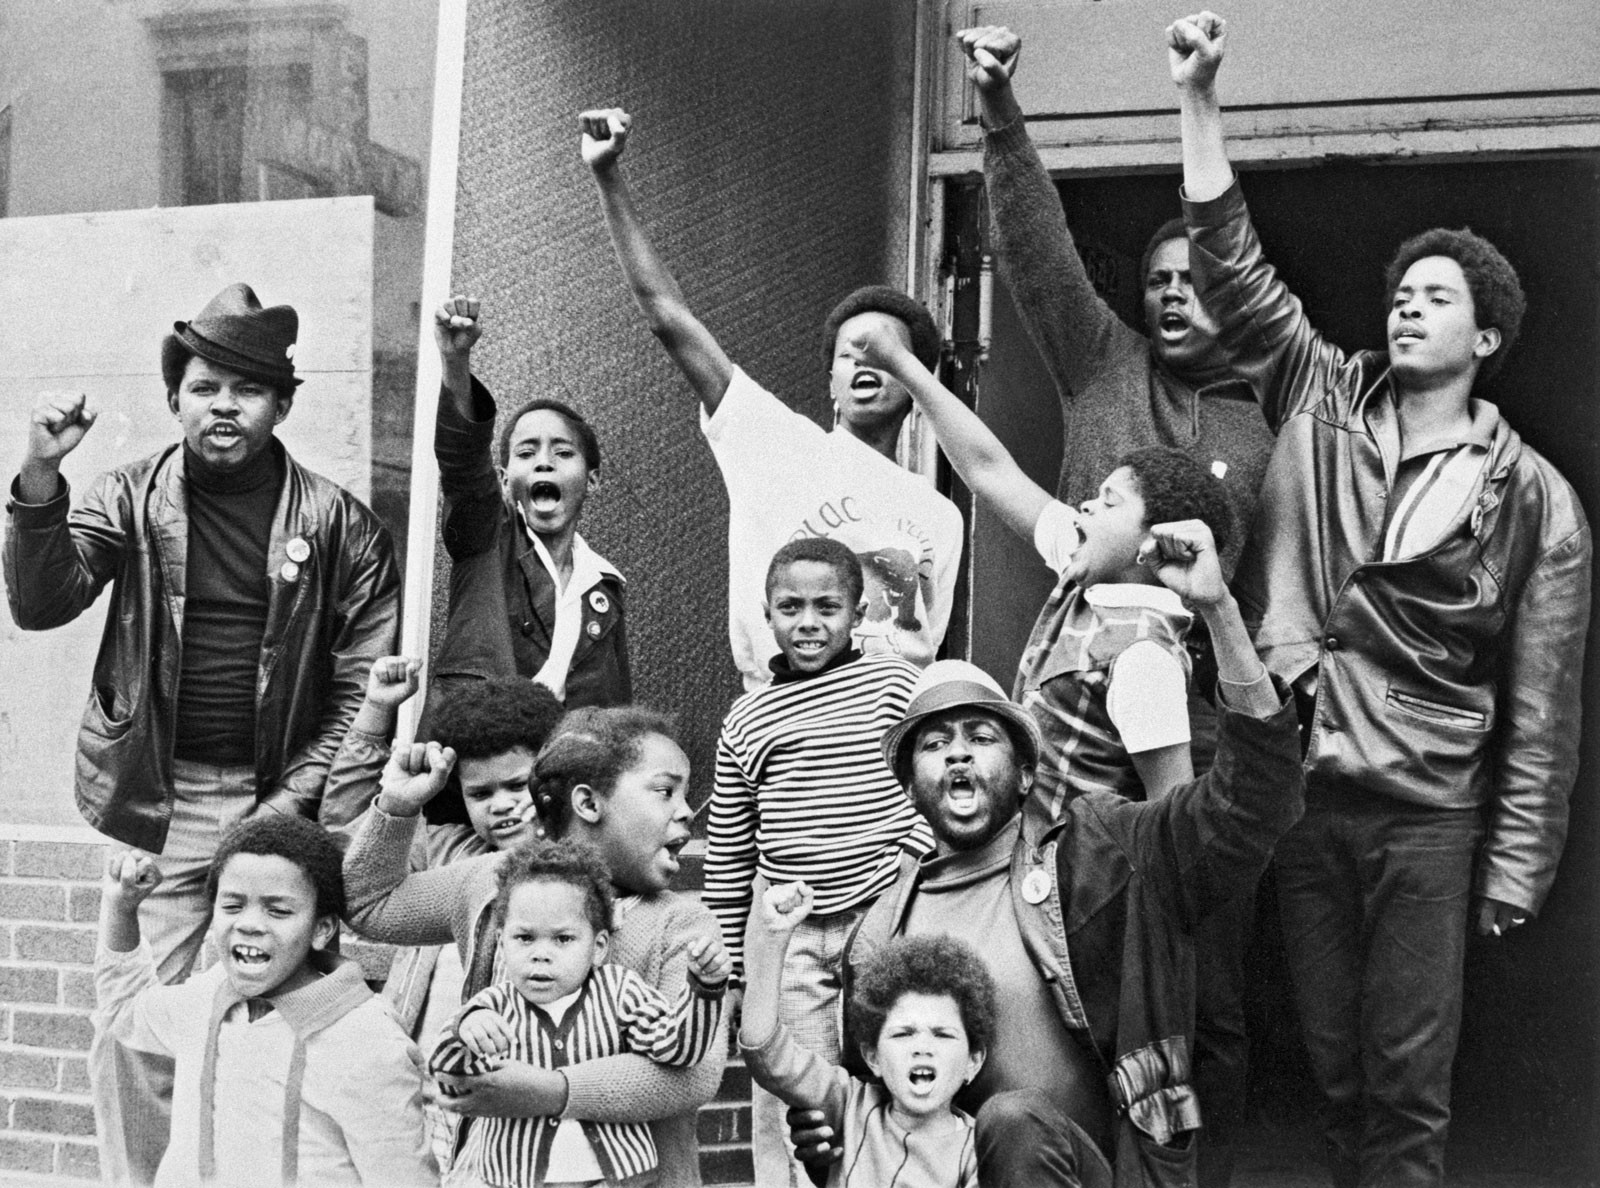 Outside a Black Panther Party 'liberation school' in San Francisco's Fillmore District (1969). Bettmann / Corbis